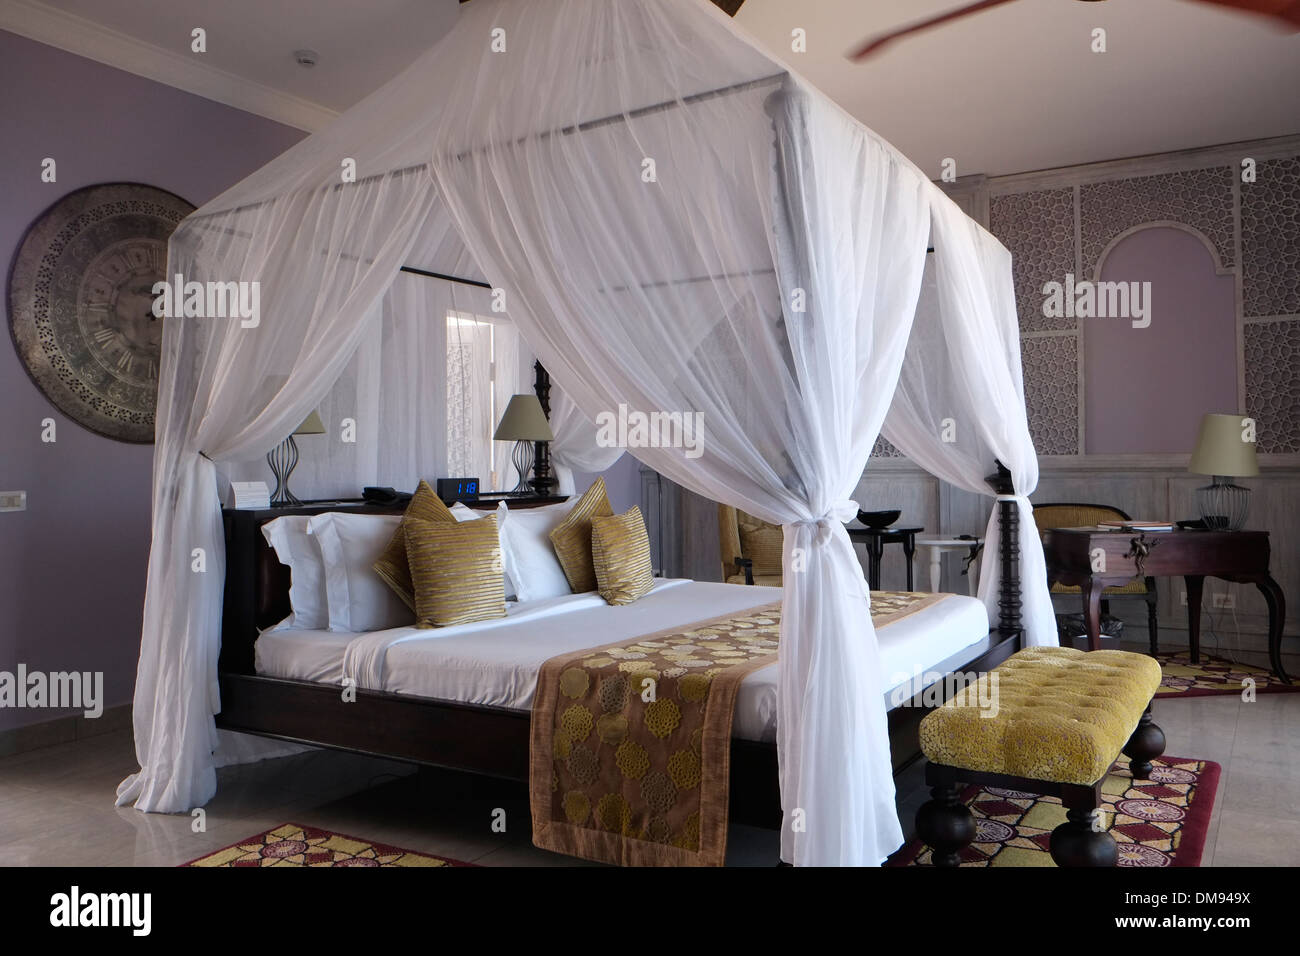 The Presidential Suite in Hideaway of Nungwi Resort on the north-west coast of Zanzibar island a semi-autonomous part of Tanzania, in East Africa - Stock Image